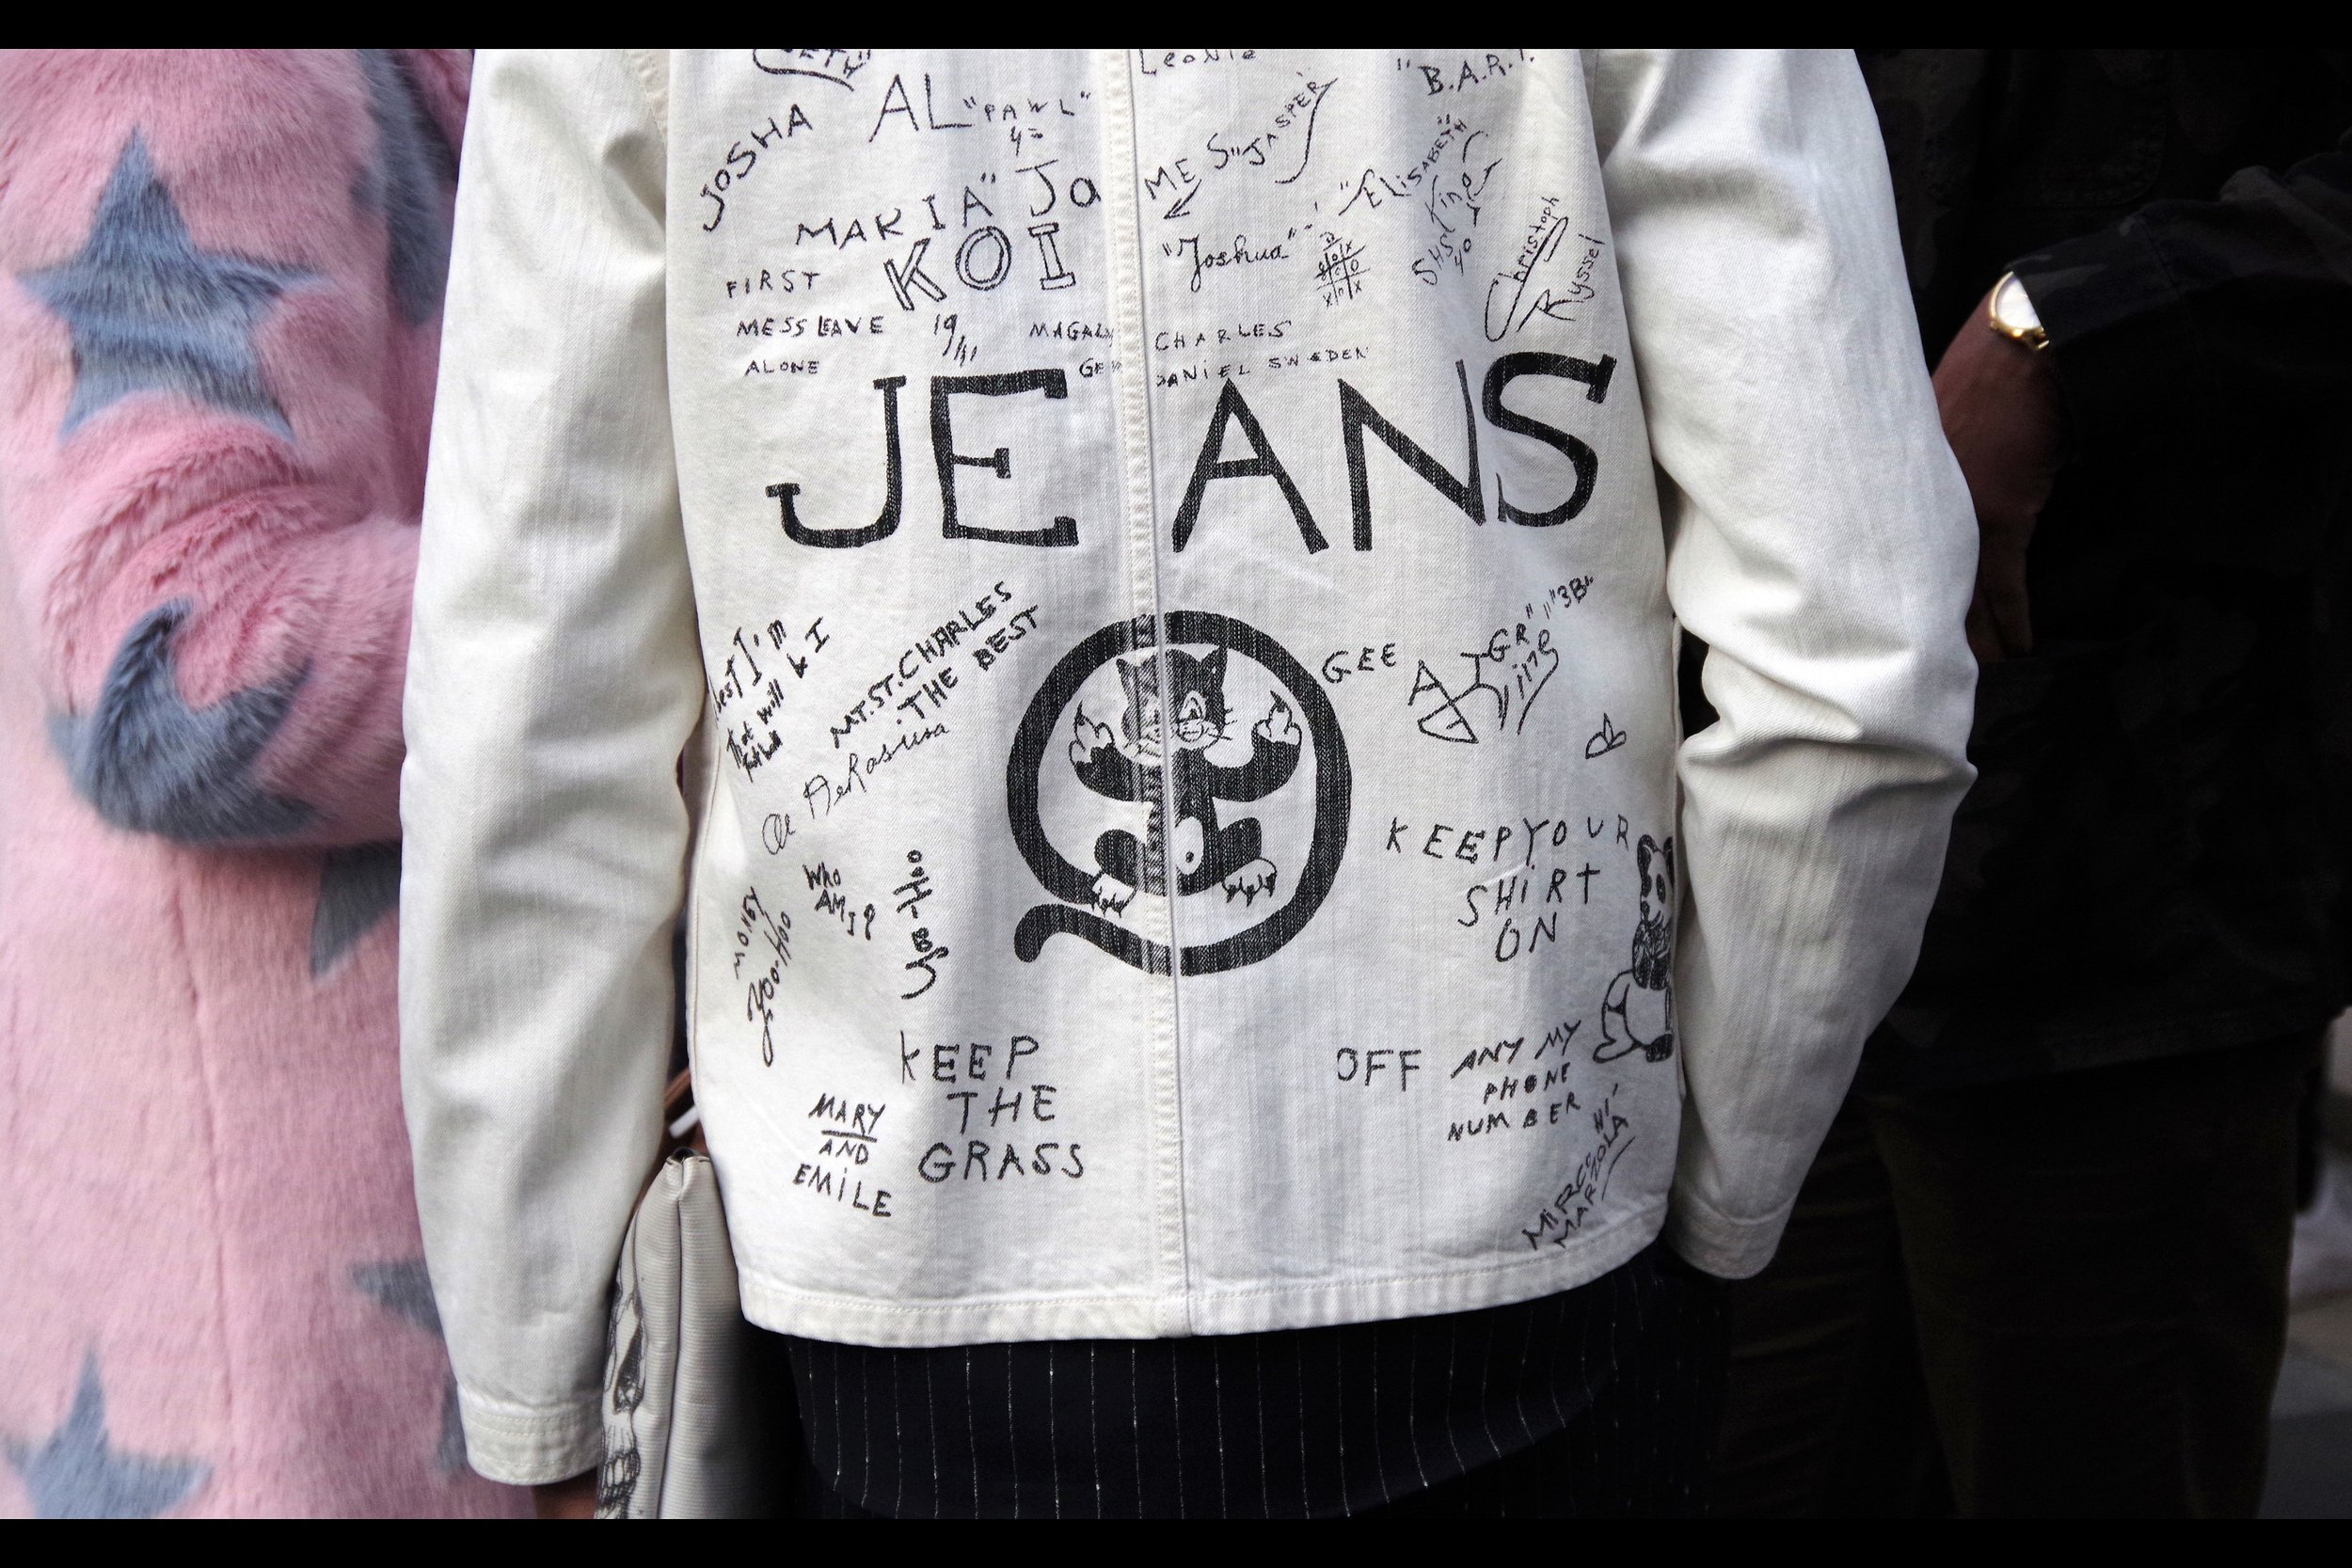 """""""At first I got pissed at them for ruining a $1000 jacket with their damn scrawls. But it's fashion week, so I'm going to see if I can sell it for $10,000 and then see if I can STILL get them to reimburse me for the jacket"""""""